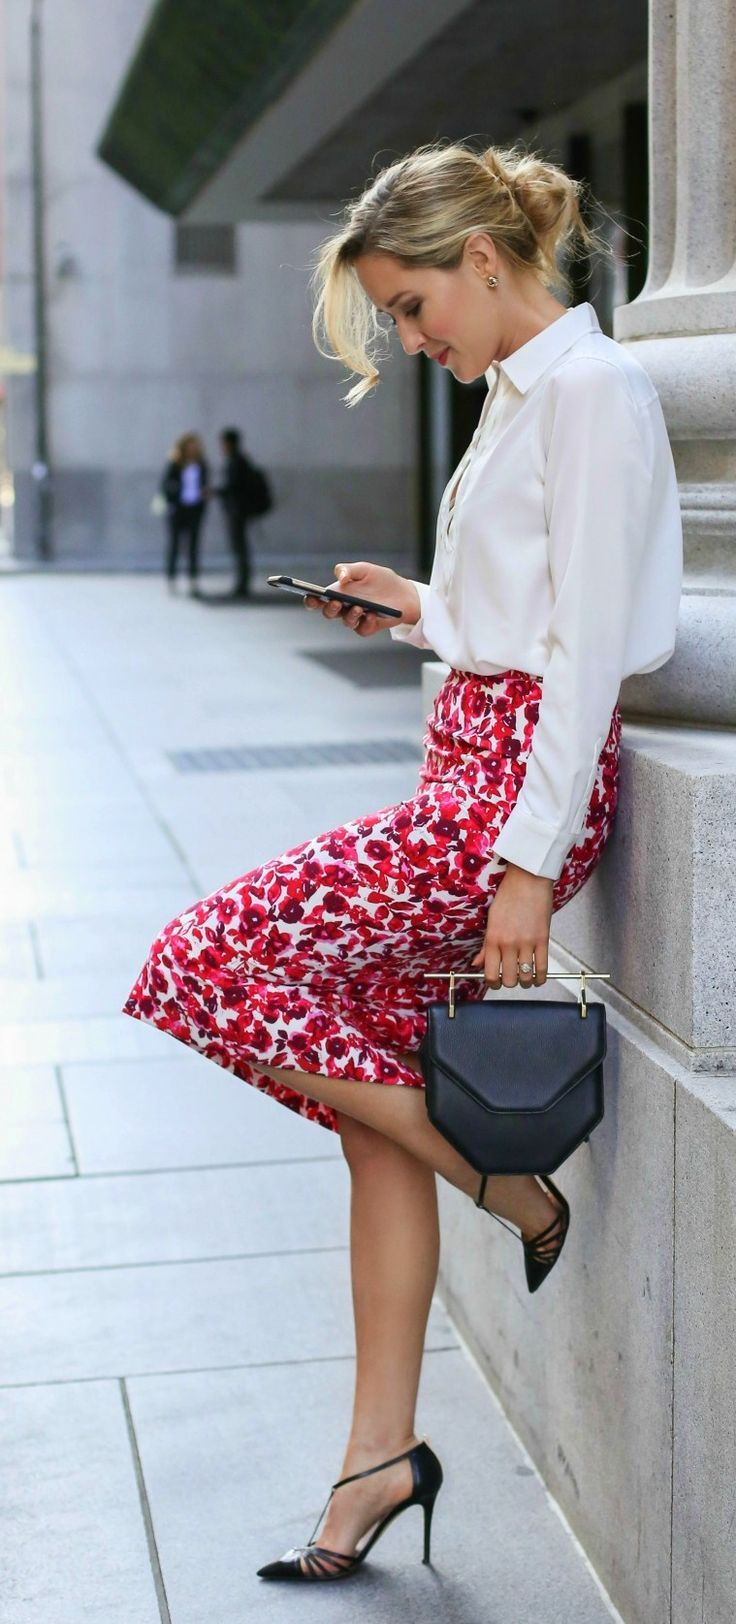 Hard to beat an interesting pencil skirt with a white blouse for classic attire!